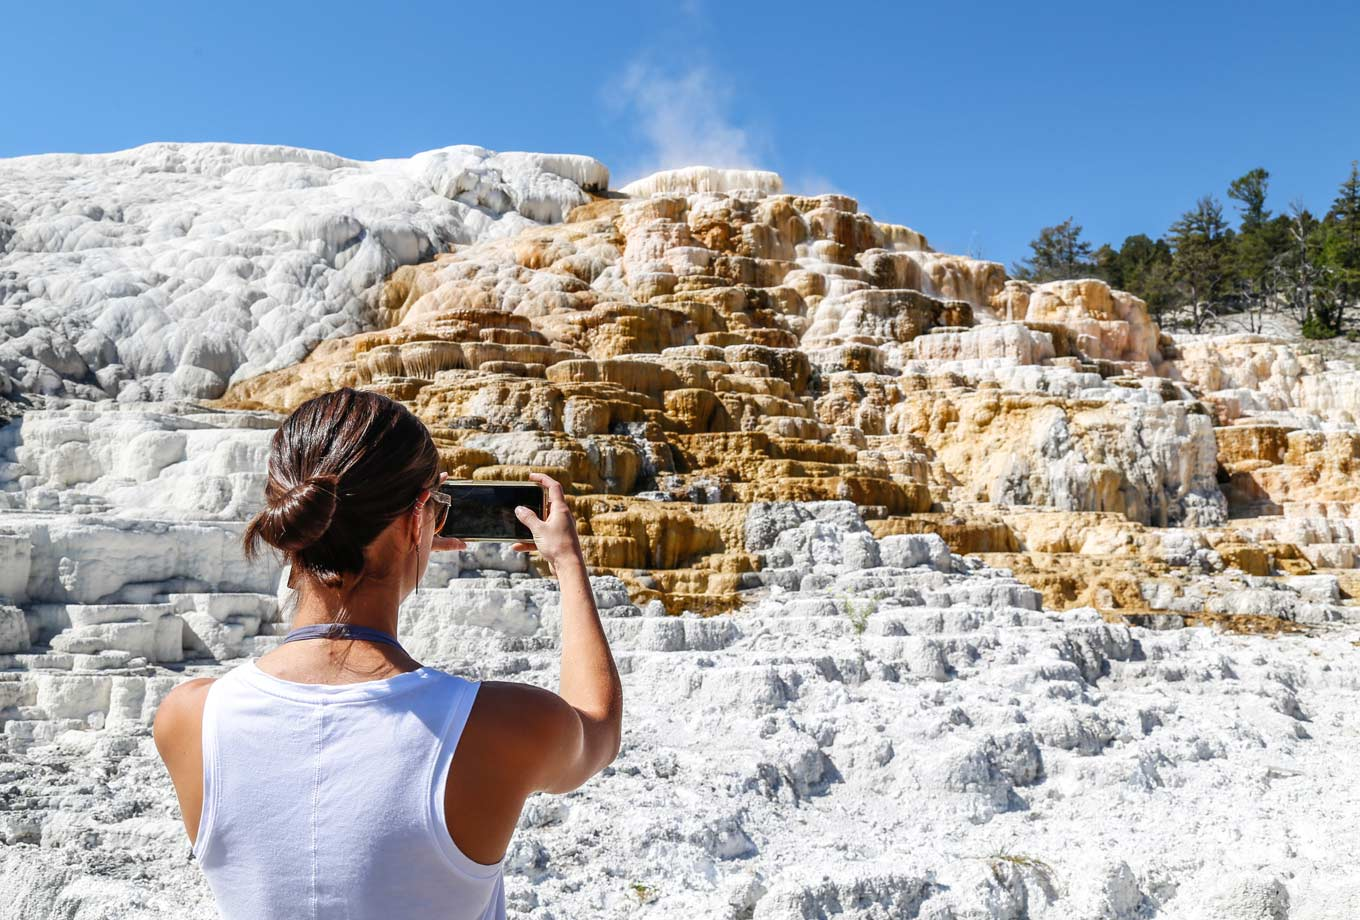 A Yellowstone visitor photographing Mammoth Hot Springs